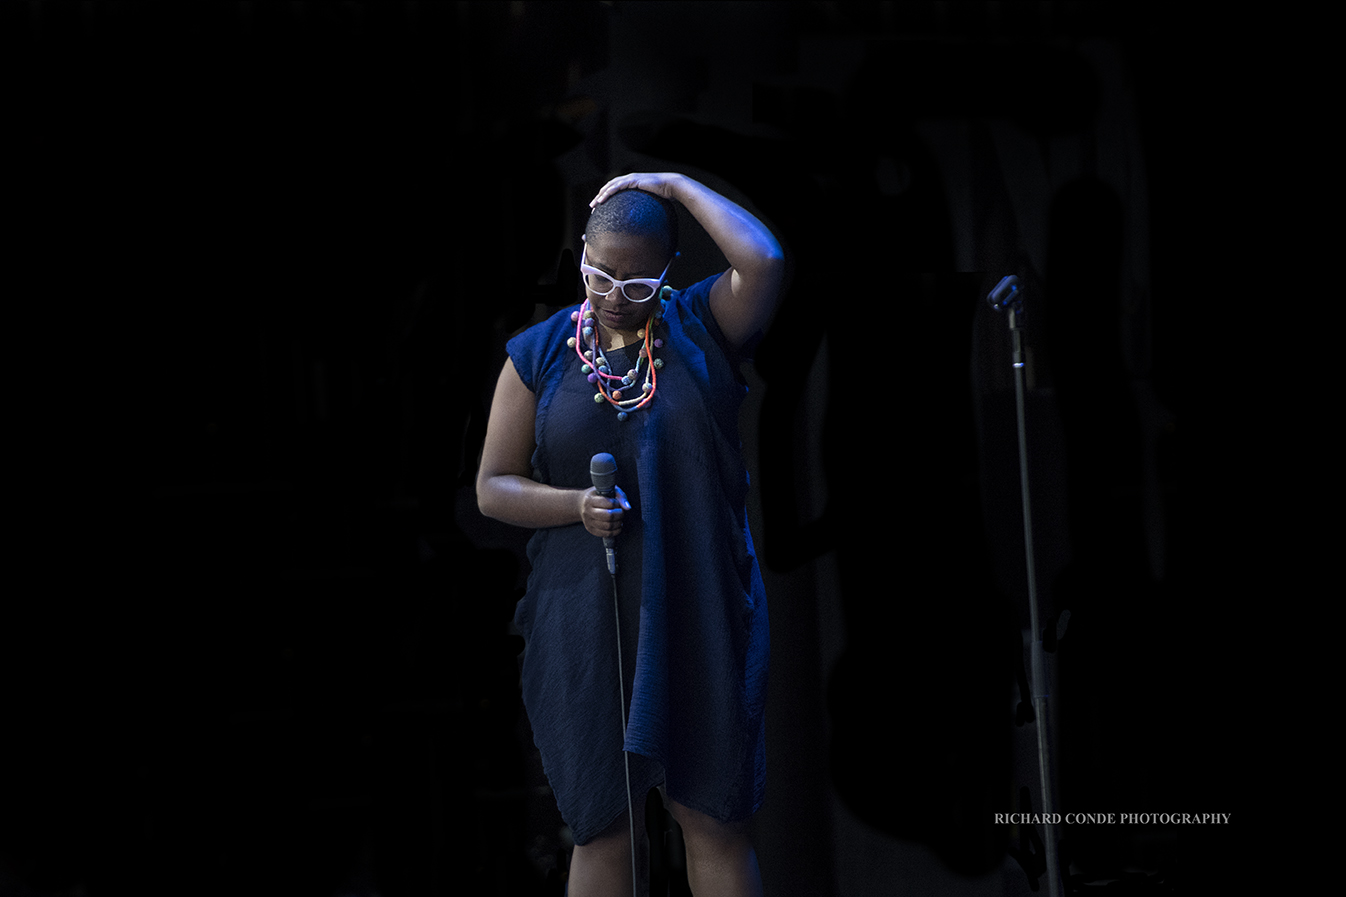 Dee Dee Bridgewater at the Freihofer Saratoga Jazz Festival 2017